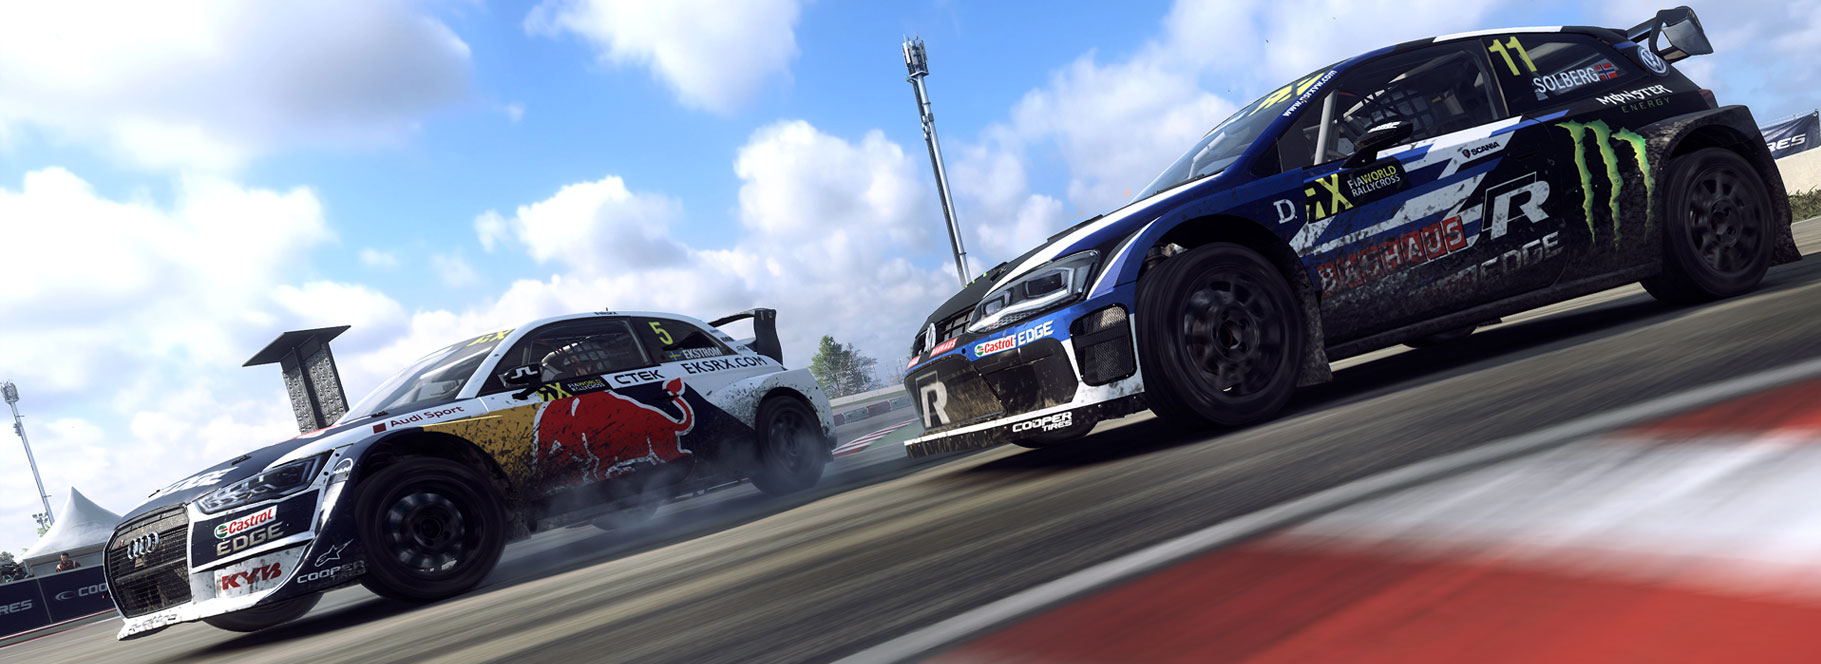 DiRT_Rally_2_World-RX-in-Motion_VW_v_Aud